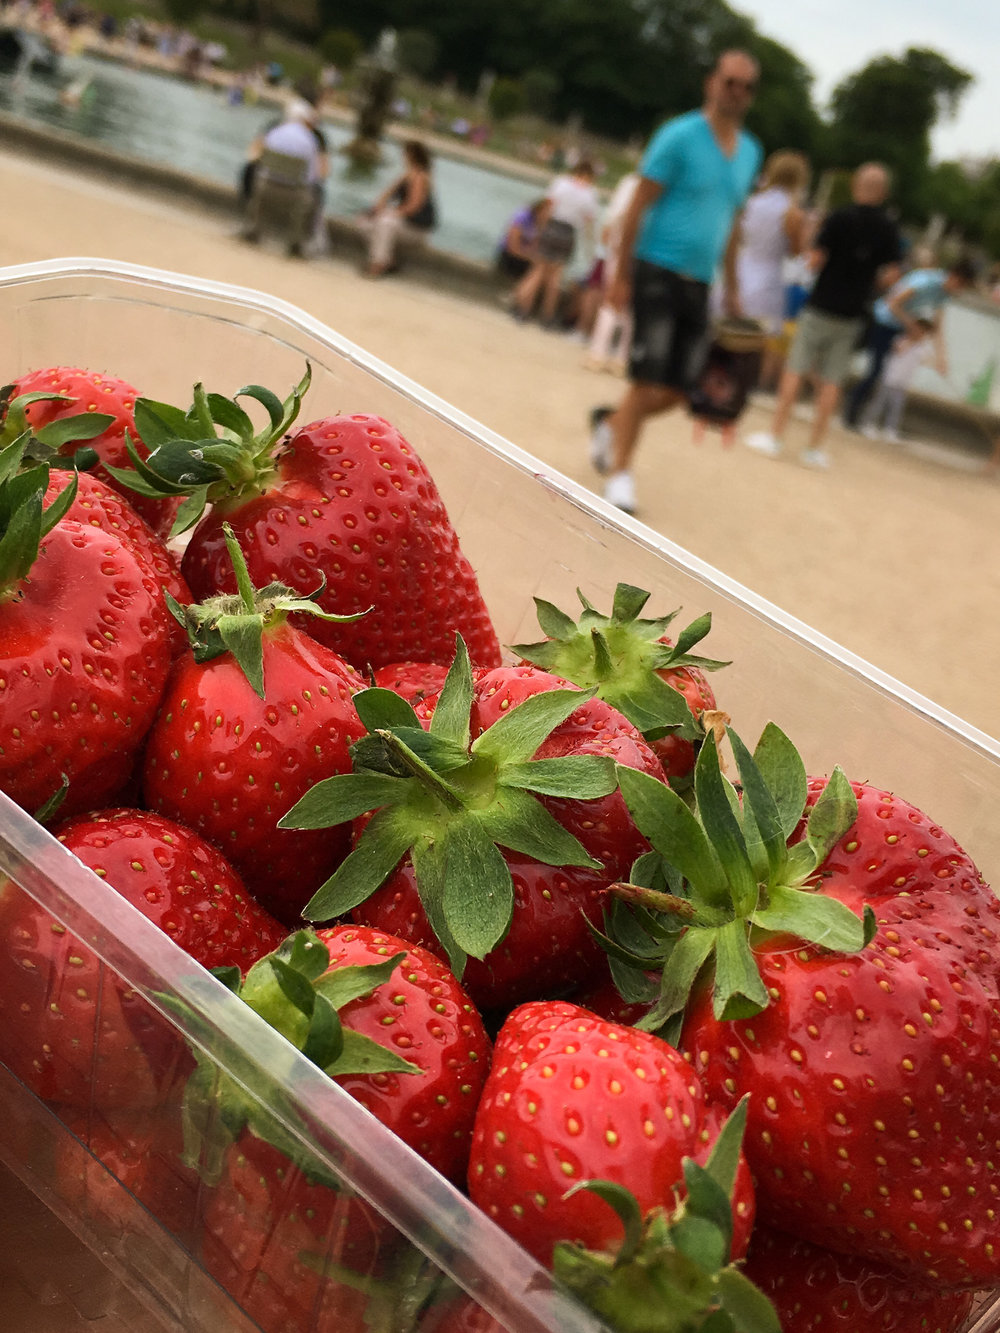 strawberries from a little market